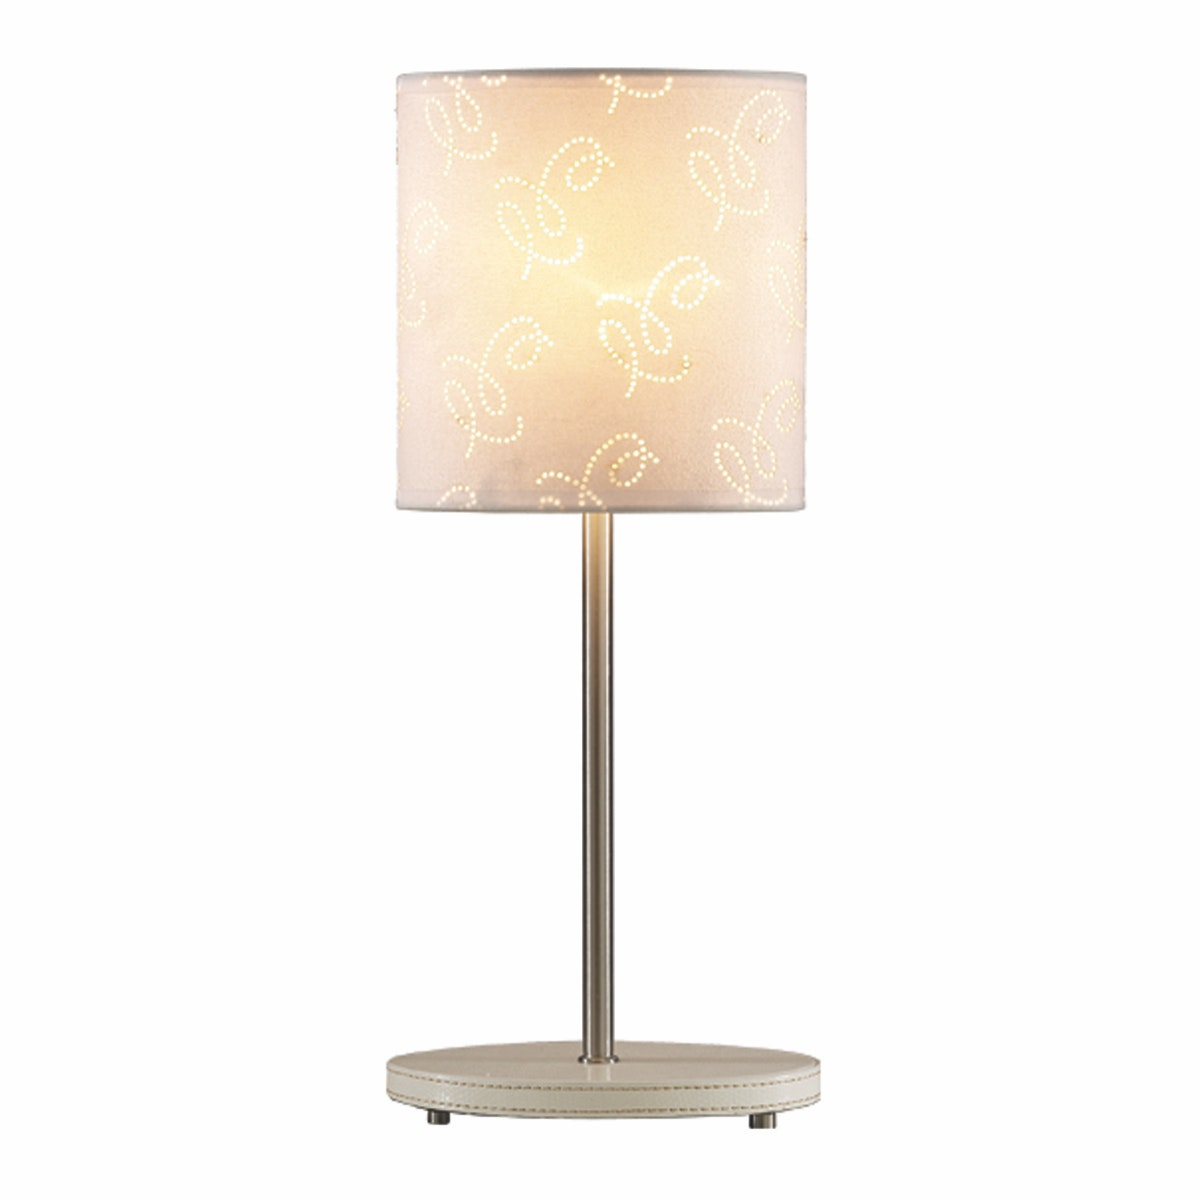 3+PROJECTS Lampu Meja Table Lamp White Pattern Fabric Shade 3+DL-PD1174-WH-VG